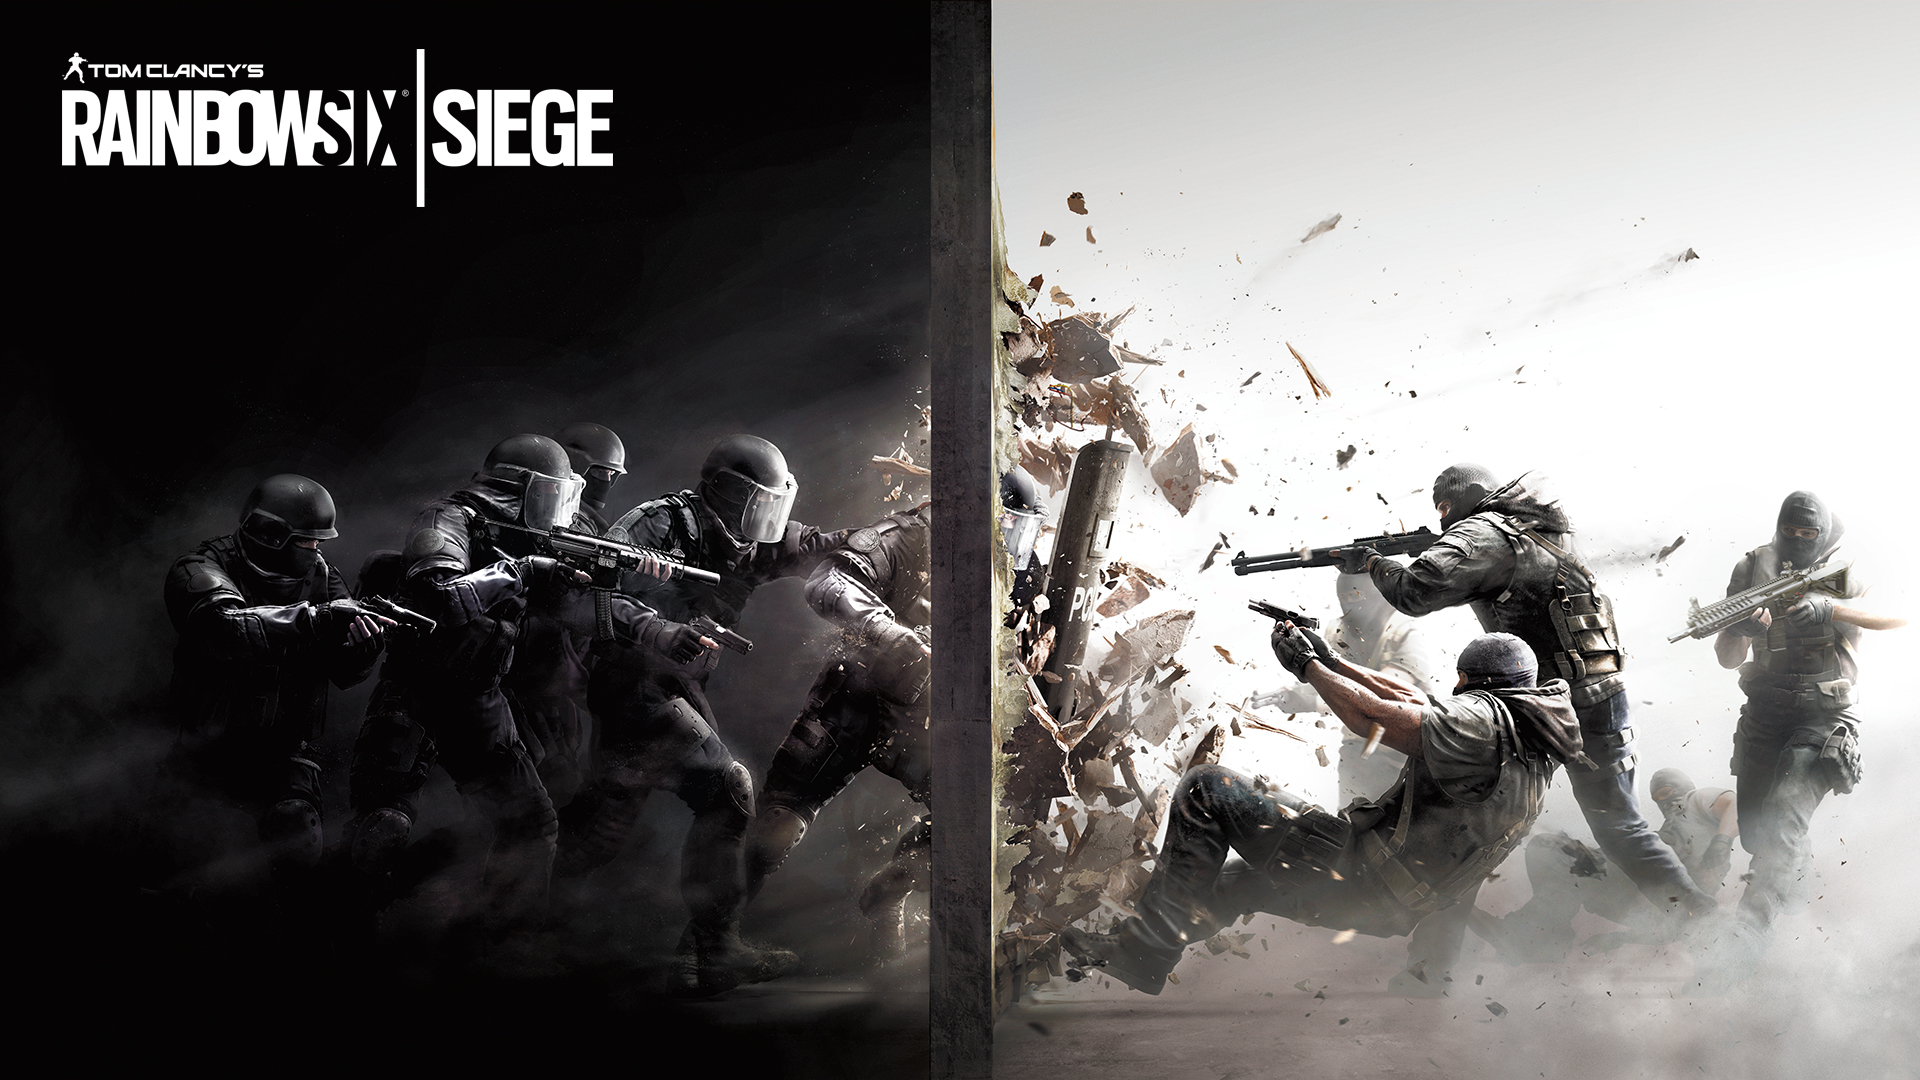 Rainbow Six Siege is free to play starting February 15